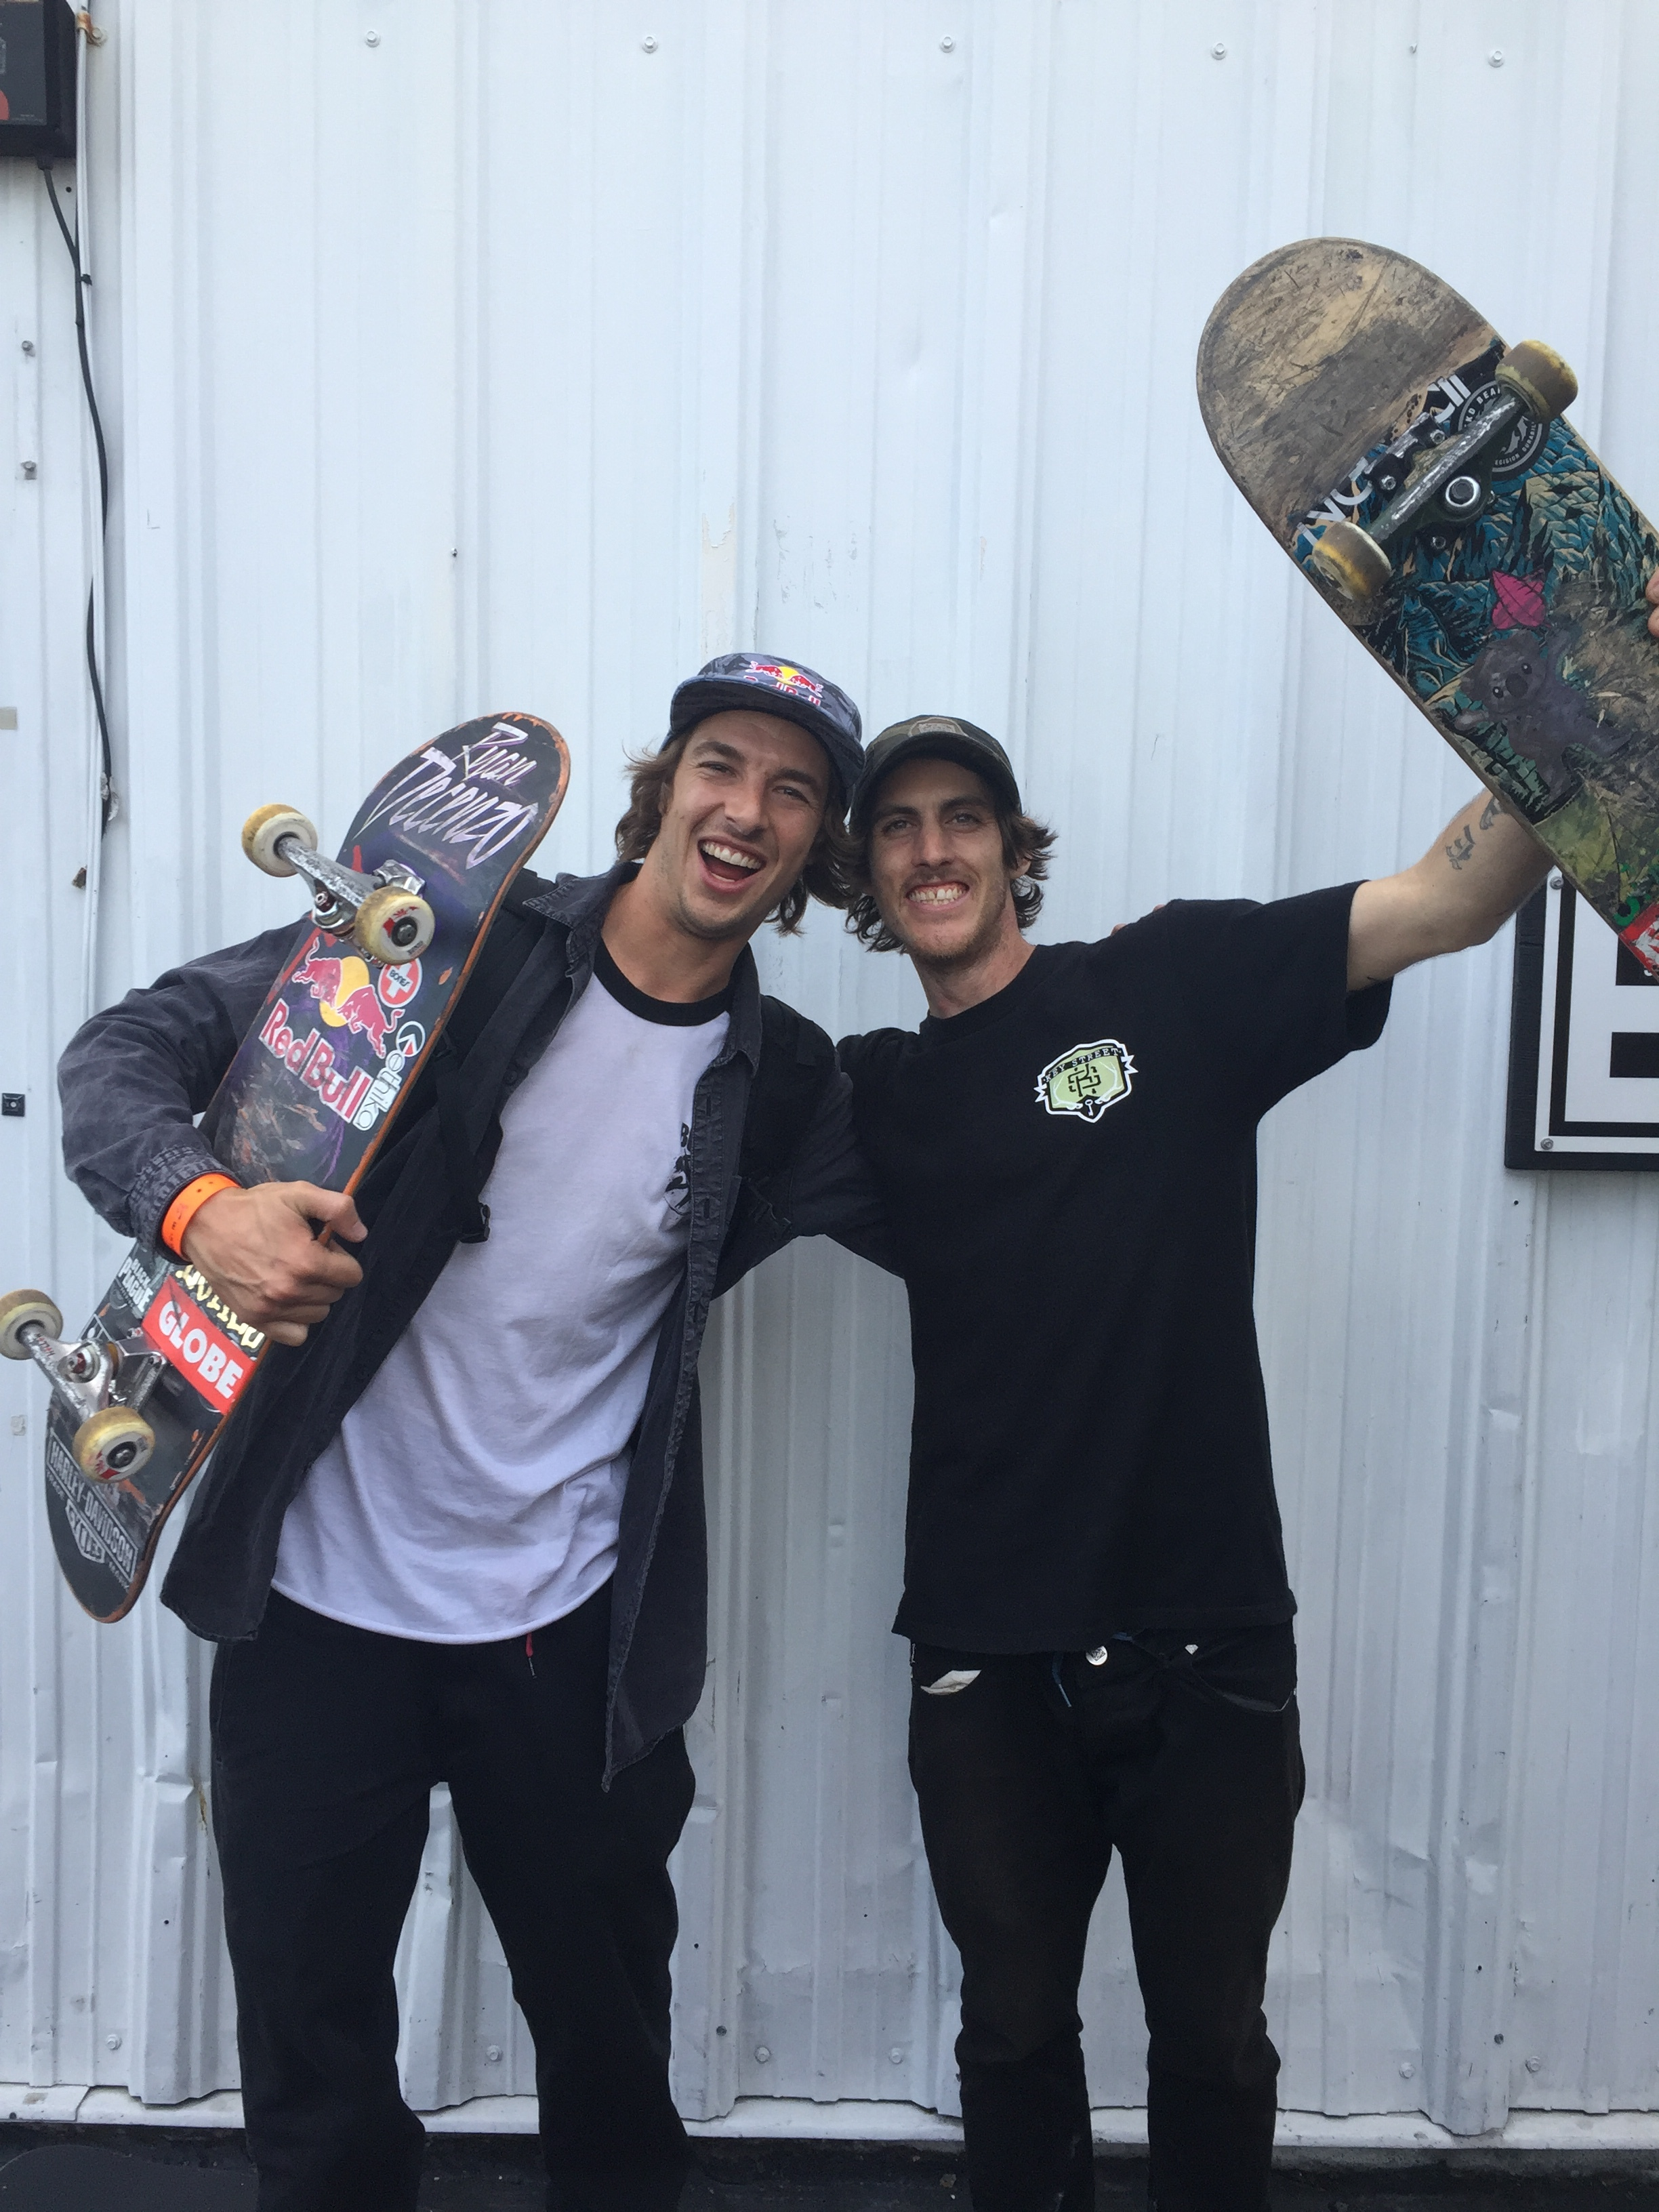 Ryan Decenzo and Dave Bachinsky Darkstar skateboards Tampa Pro 2017 street league